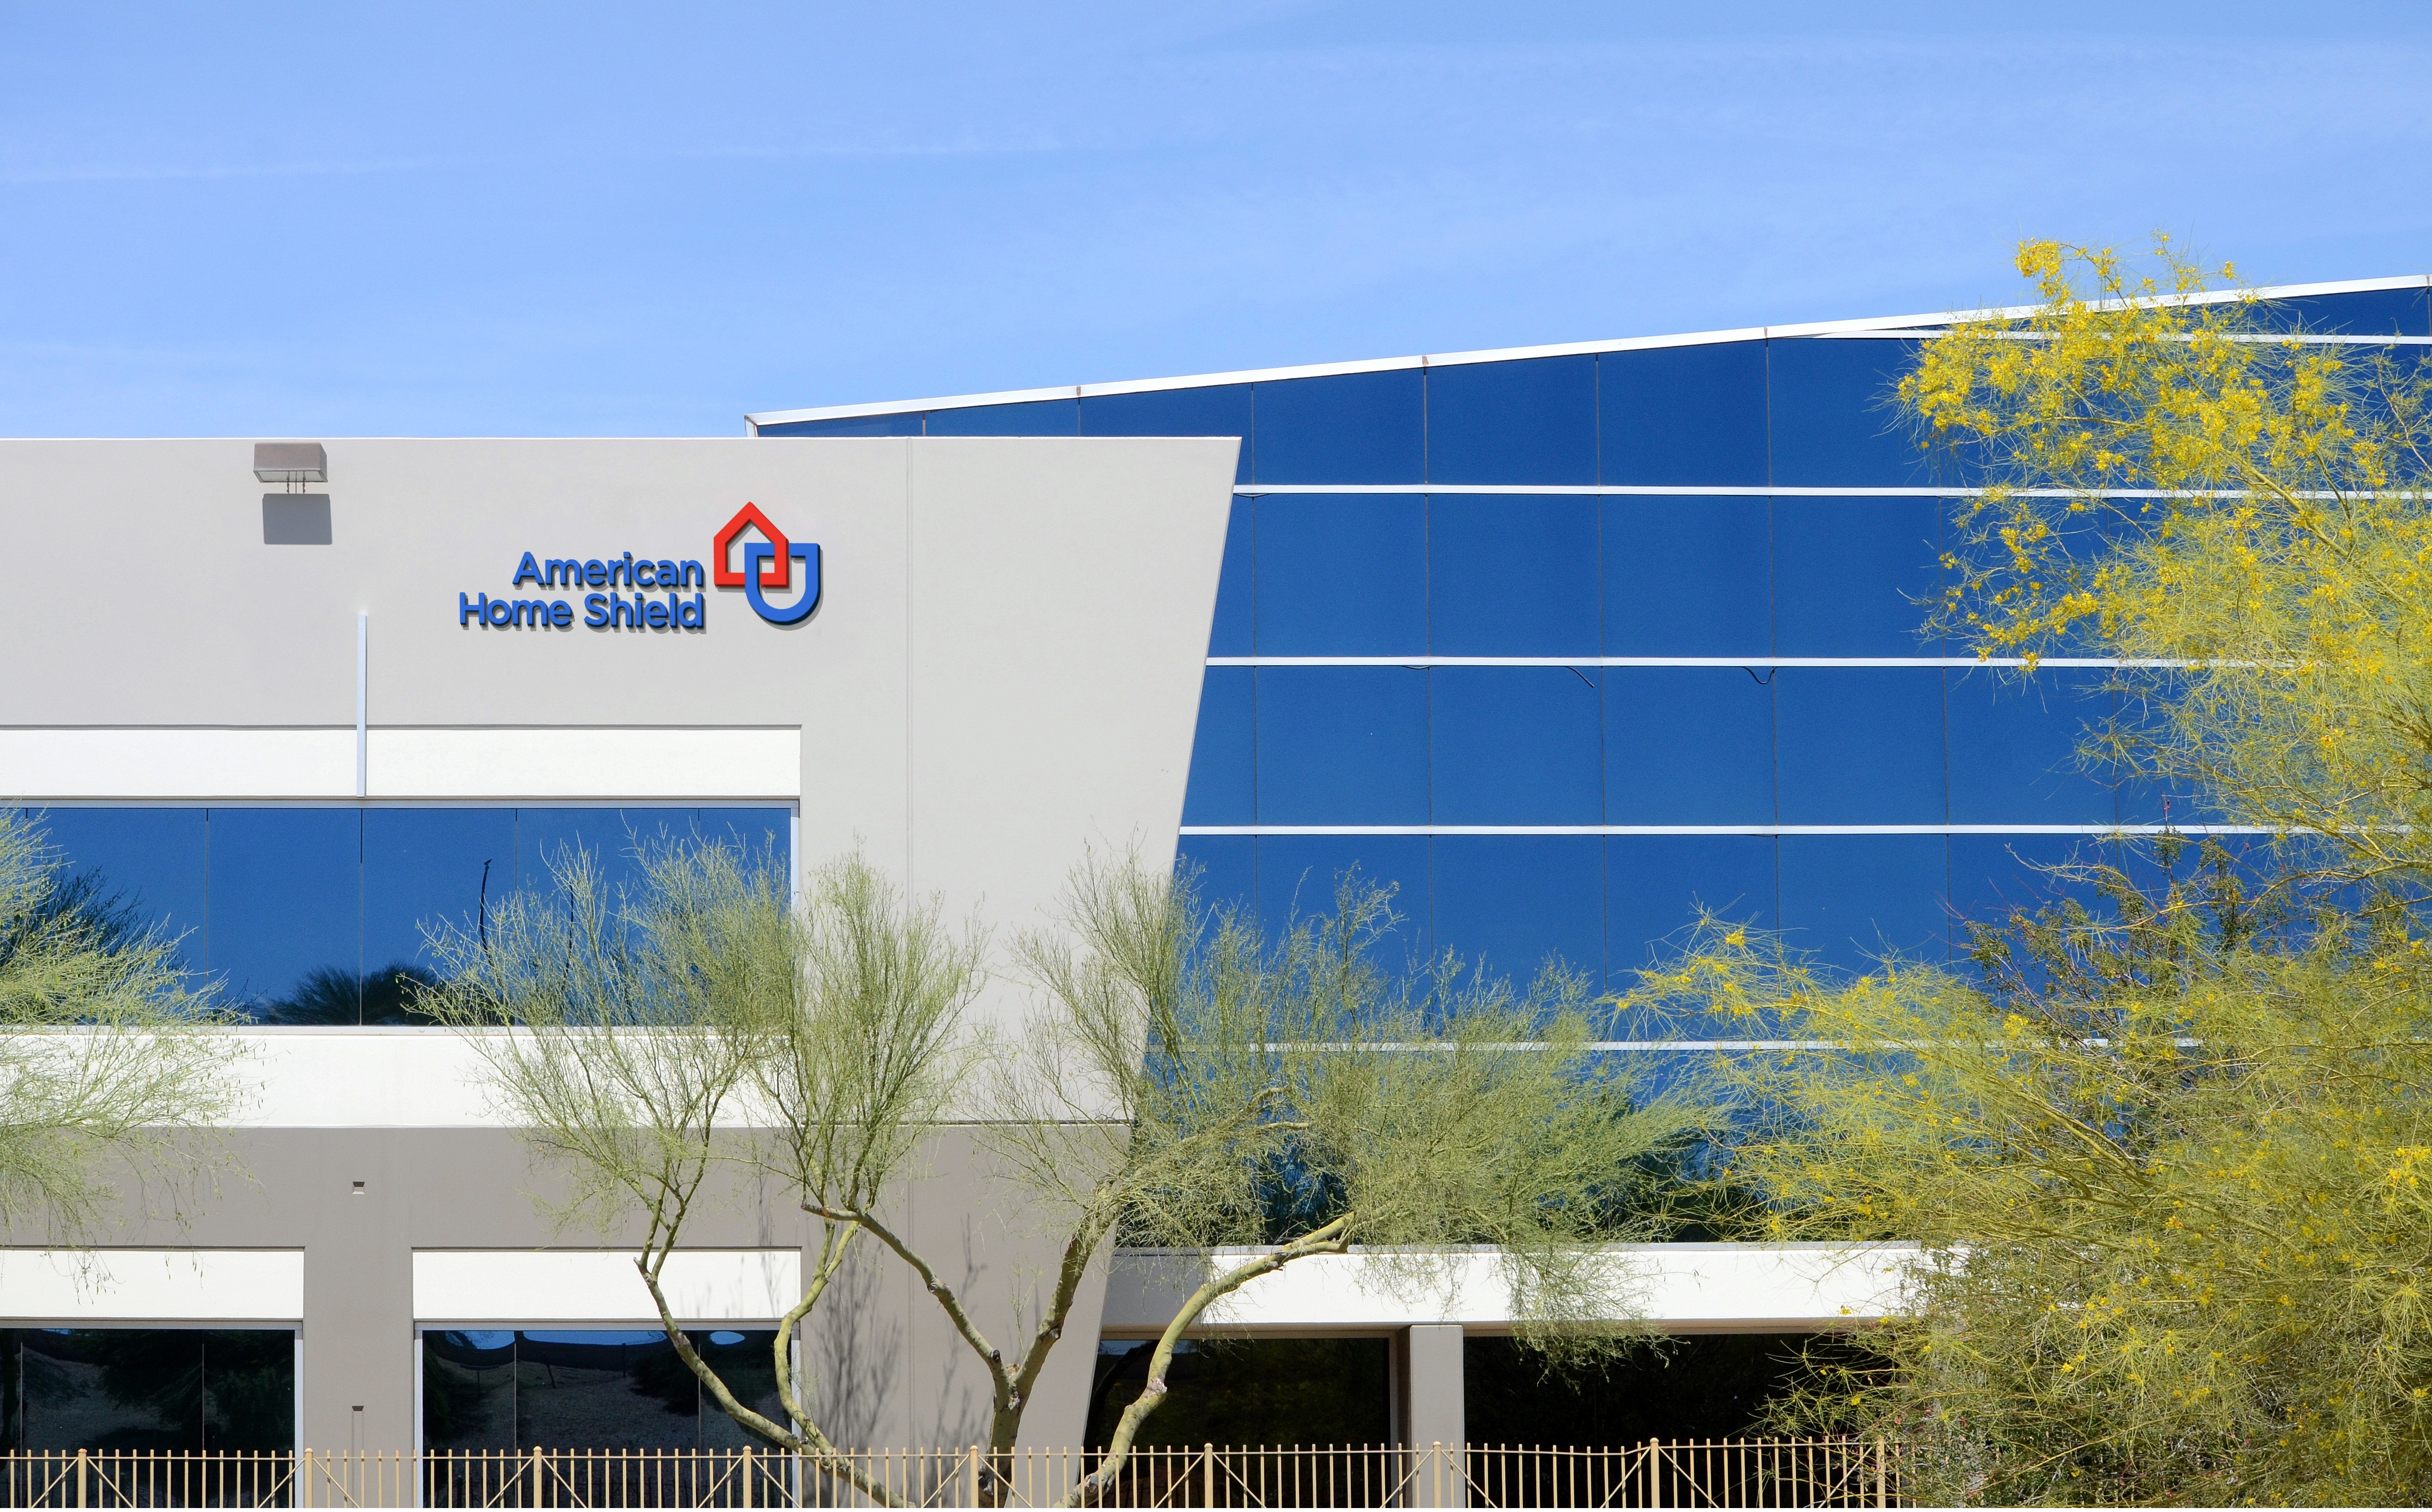 American Home Shield opens its fifth customer care center, a new 25,000-square-foot facility in Phoenix that will employ more than 250 by the end of 2017. (Photo: Business Wire)